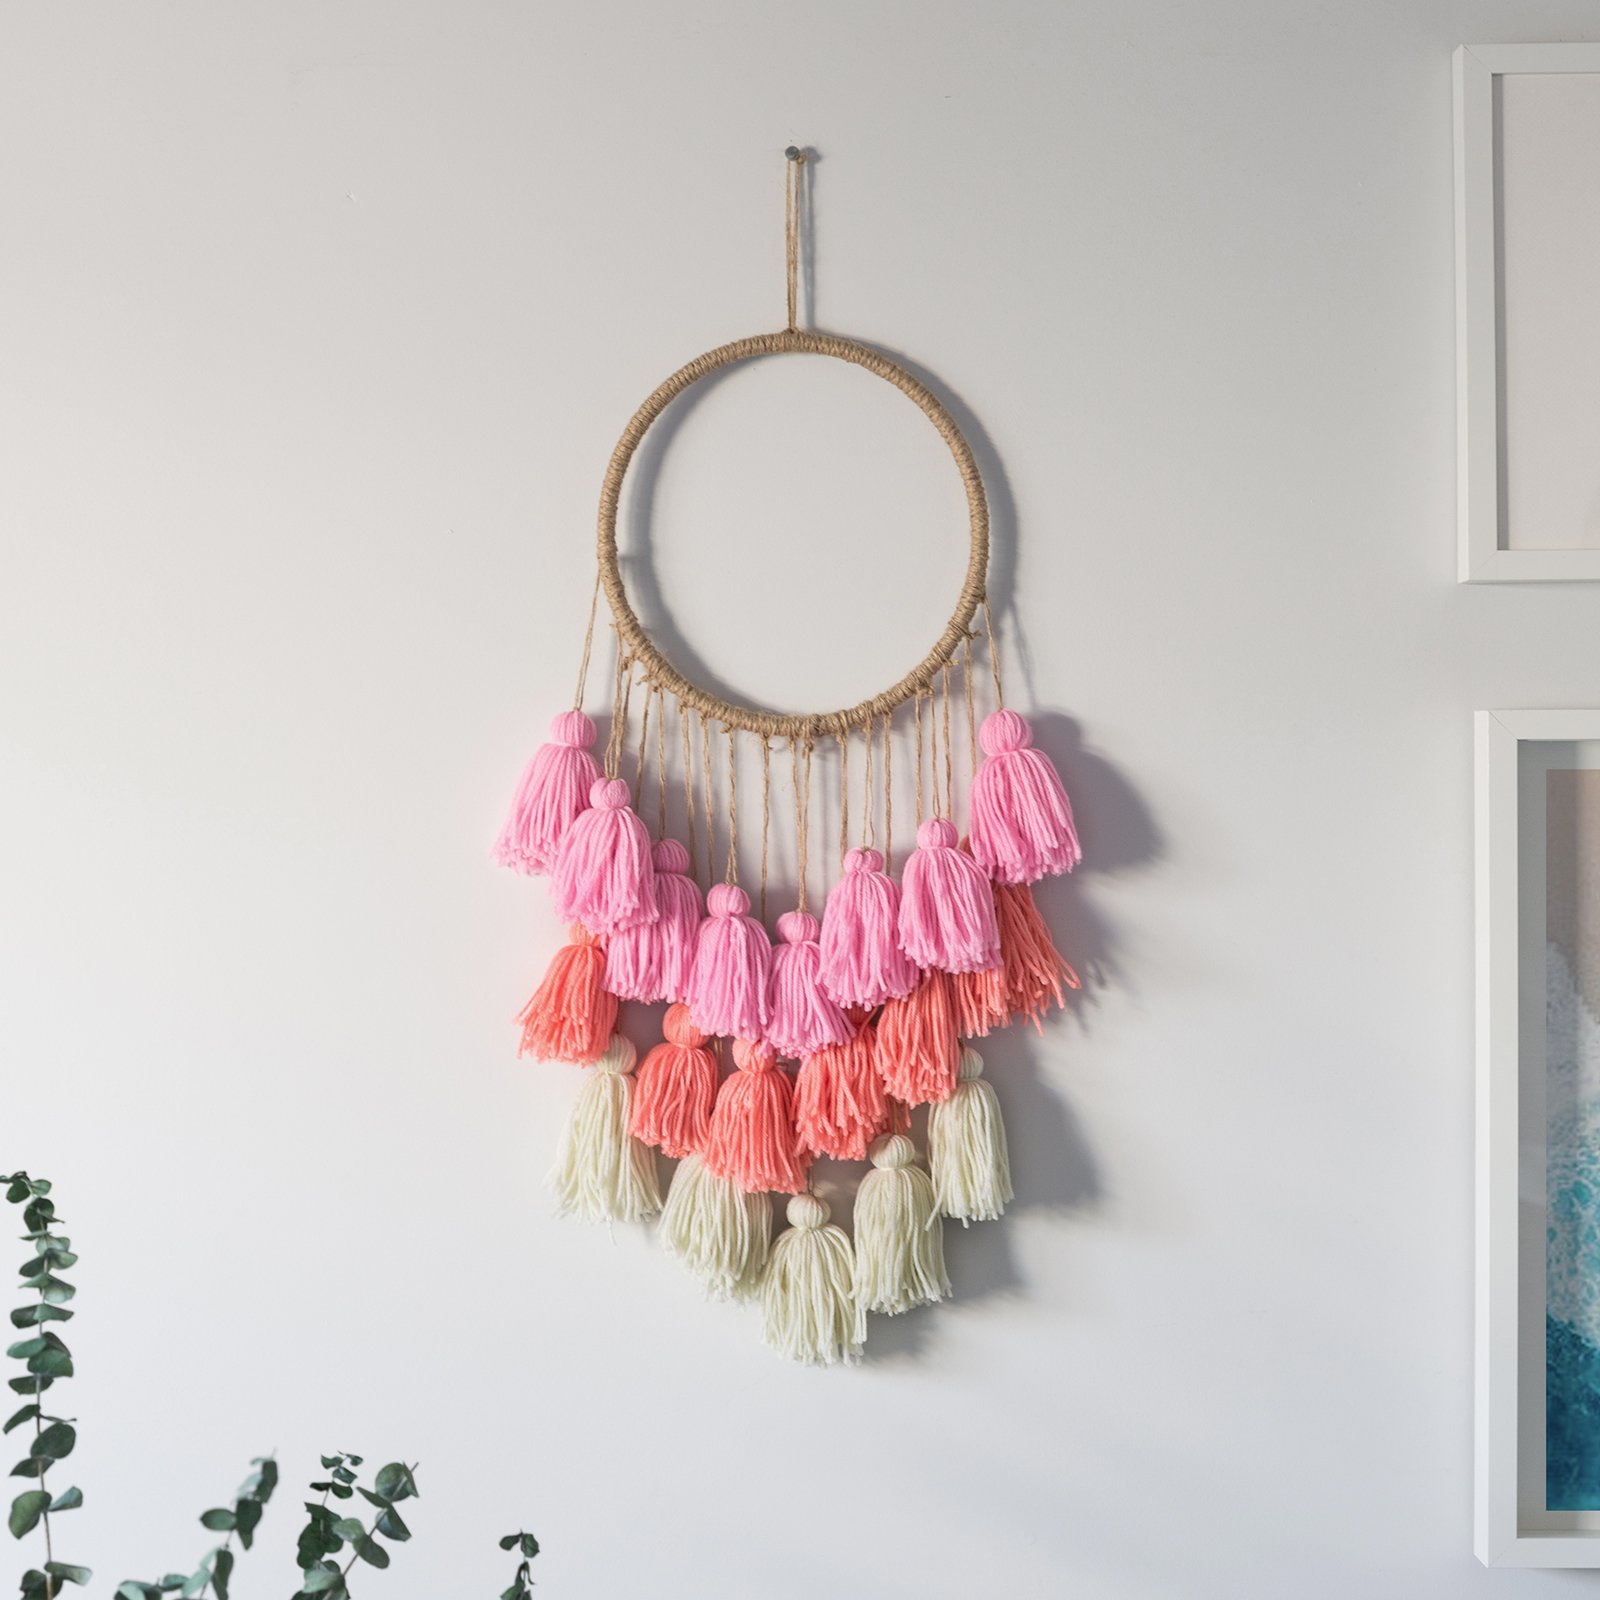 Pink Macrame Wall Hanging for Boho Decor. Woven Wall Hanging is The Perfect Boho Wall Decor. Pink Macrame Wall Hanging, 10''x25''